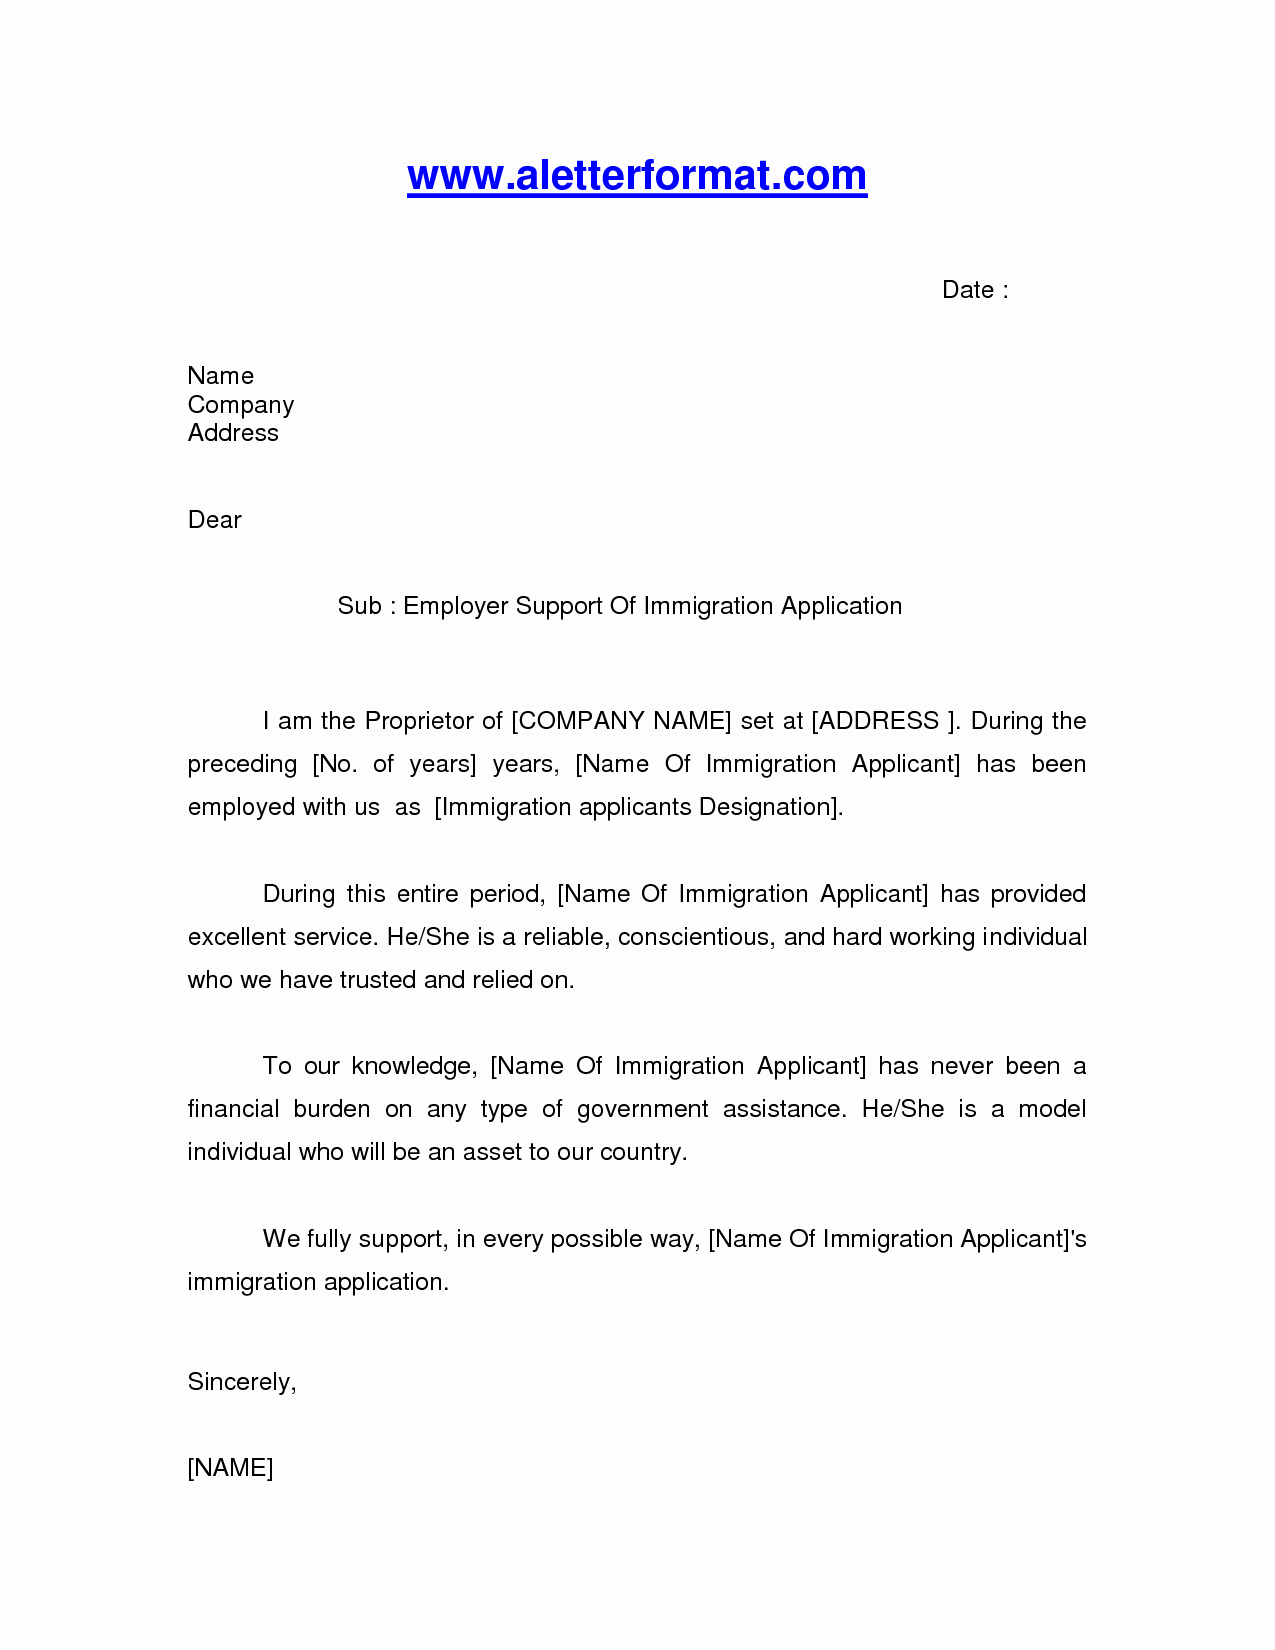 Reference Letters for Immigration Purposes New Immigration Letter Sample Google Search